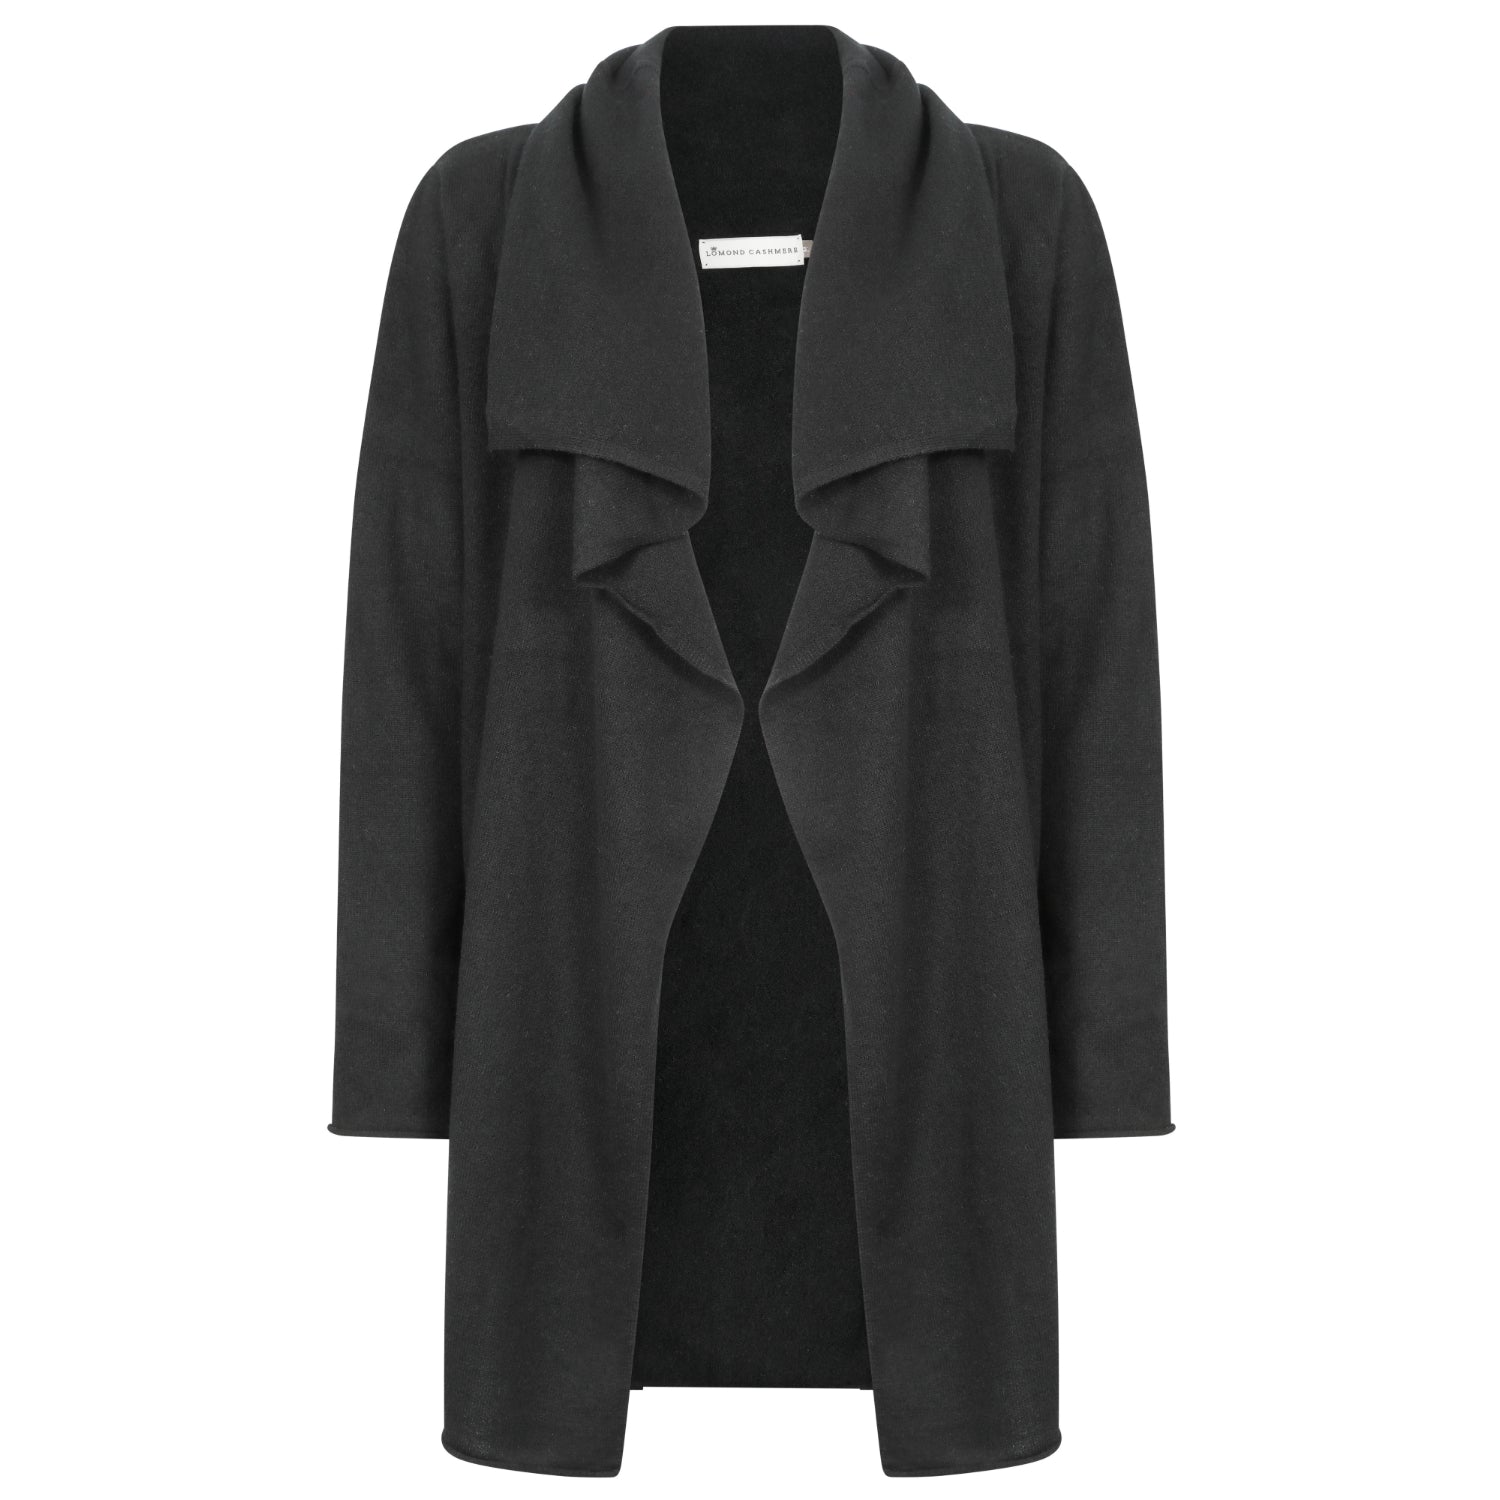 53812af400 Shop for Ladies Pure Cashmere Waterfall Open Cardigan - The Cashmere ...